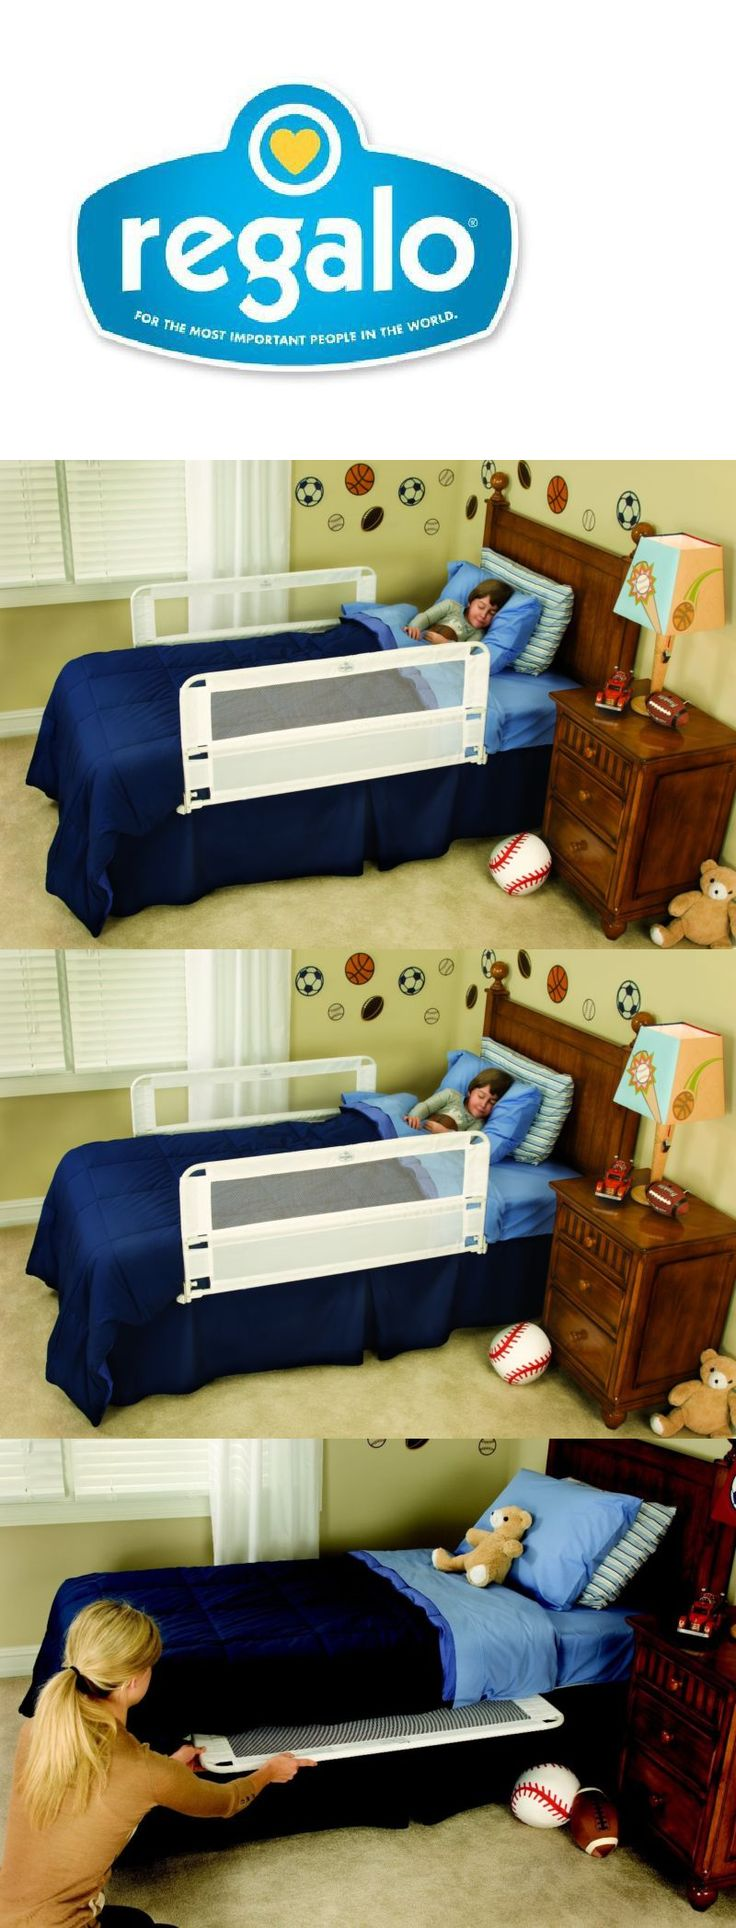 Bed Rails 162183: White Double Sided Safety Bed Rail Guard For Infants Toddlers Kids Bedroom -> BUY IT NOW ONLY: $53.51 on eBay!